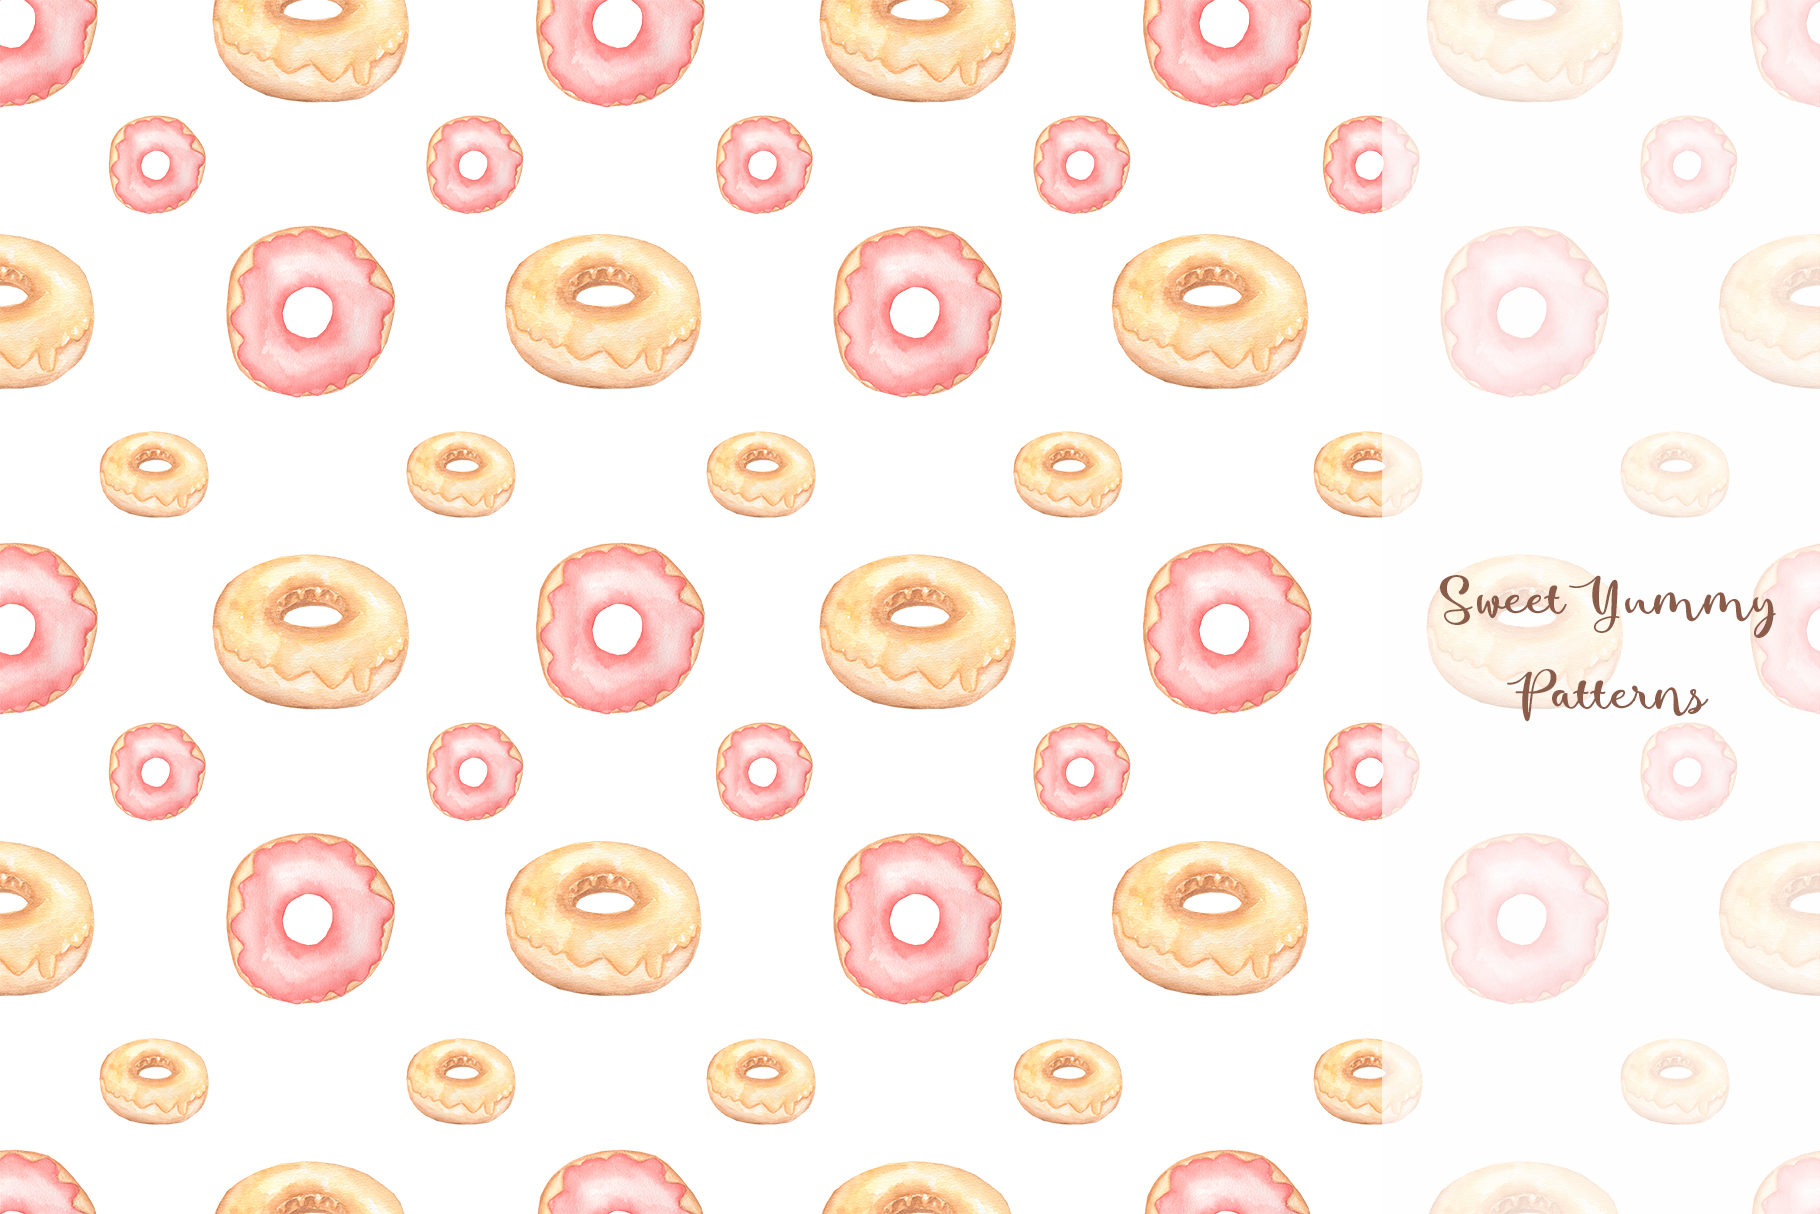 Sweet Yummy Patterns Collection example image 2